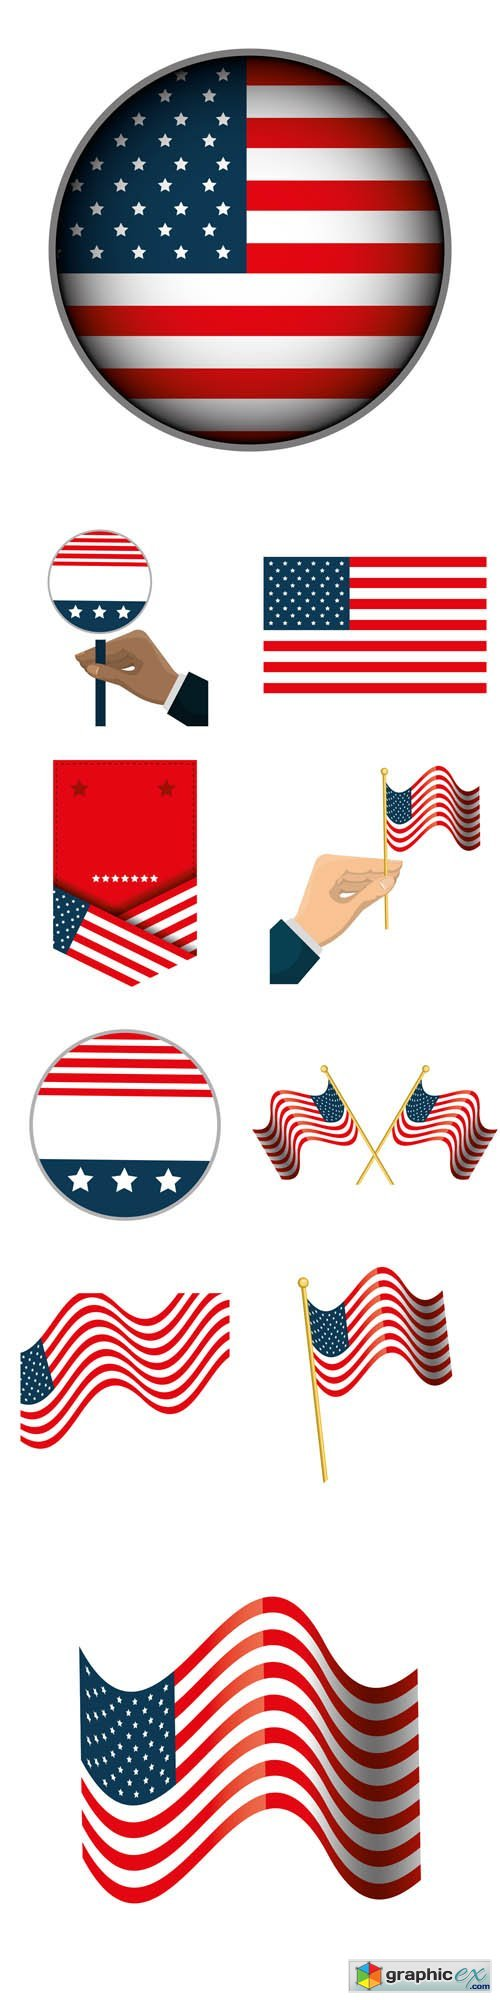 United States of America Emblems